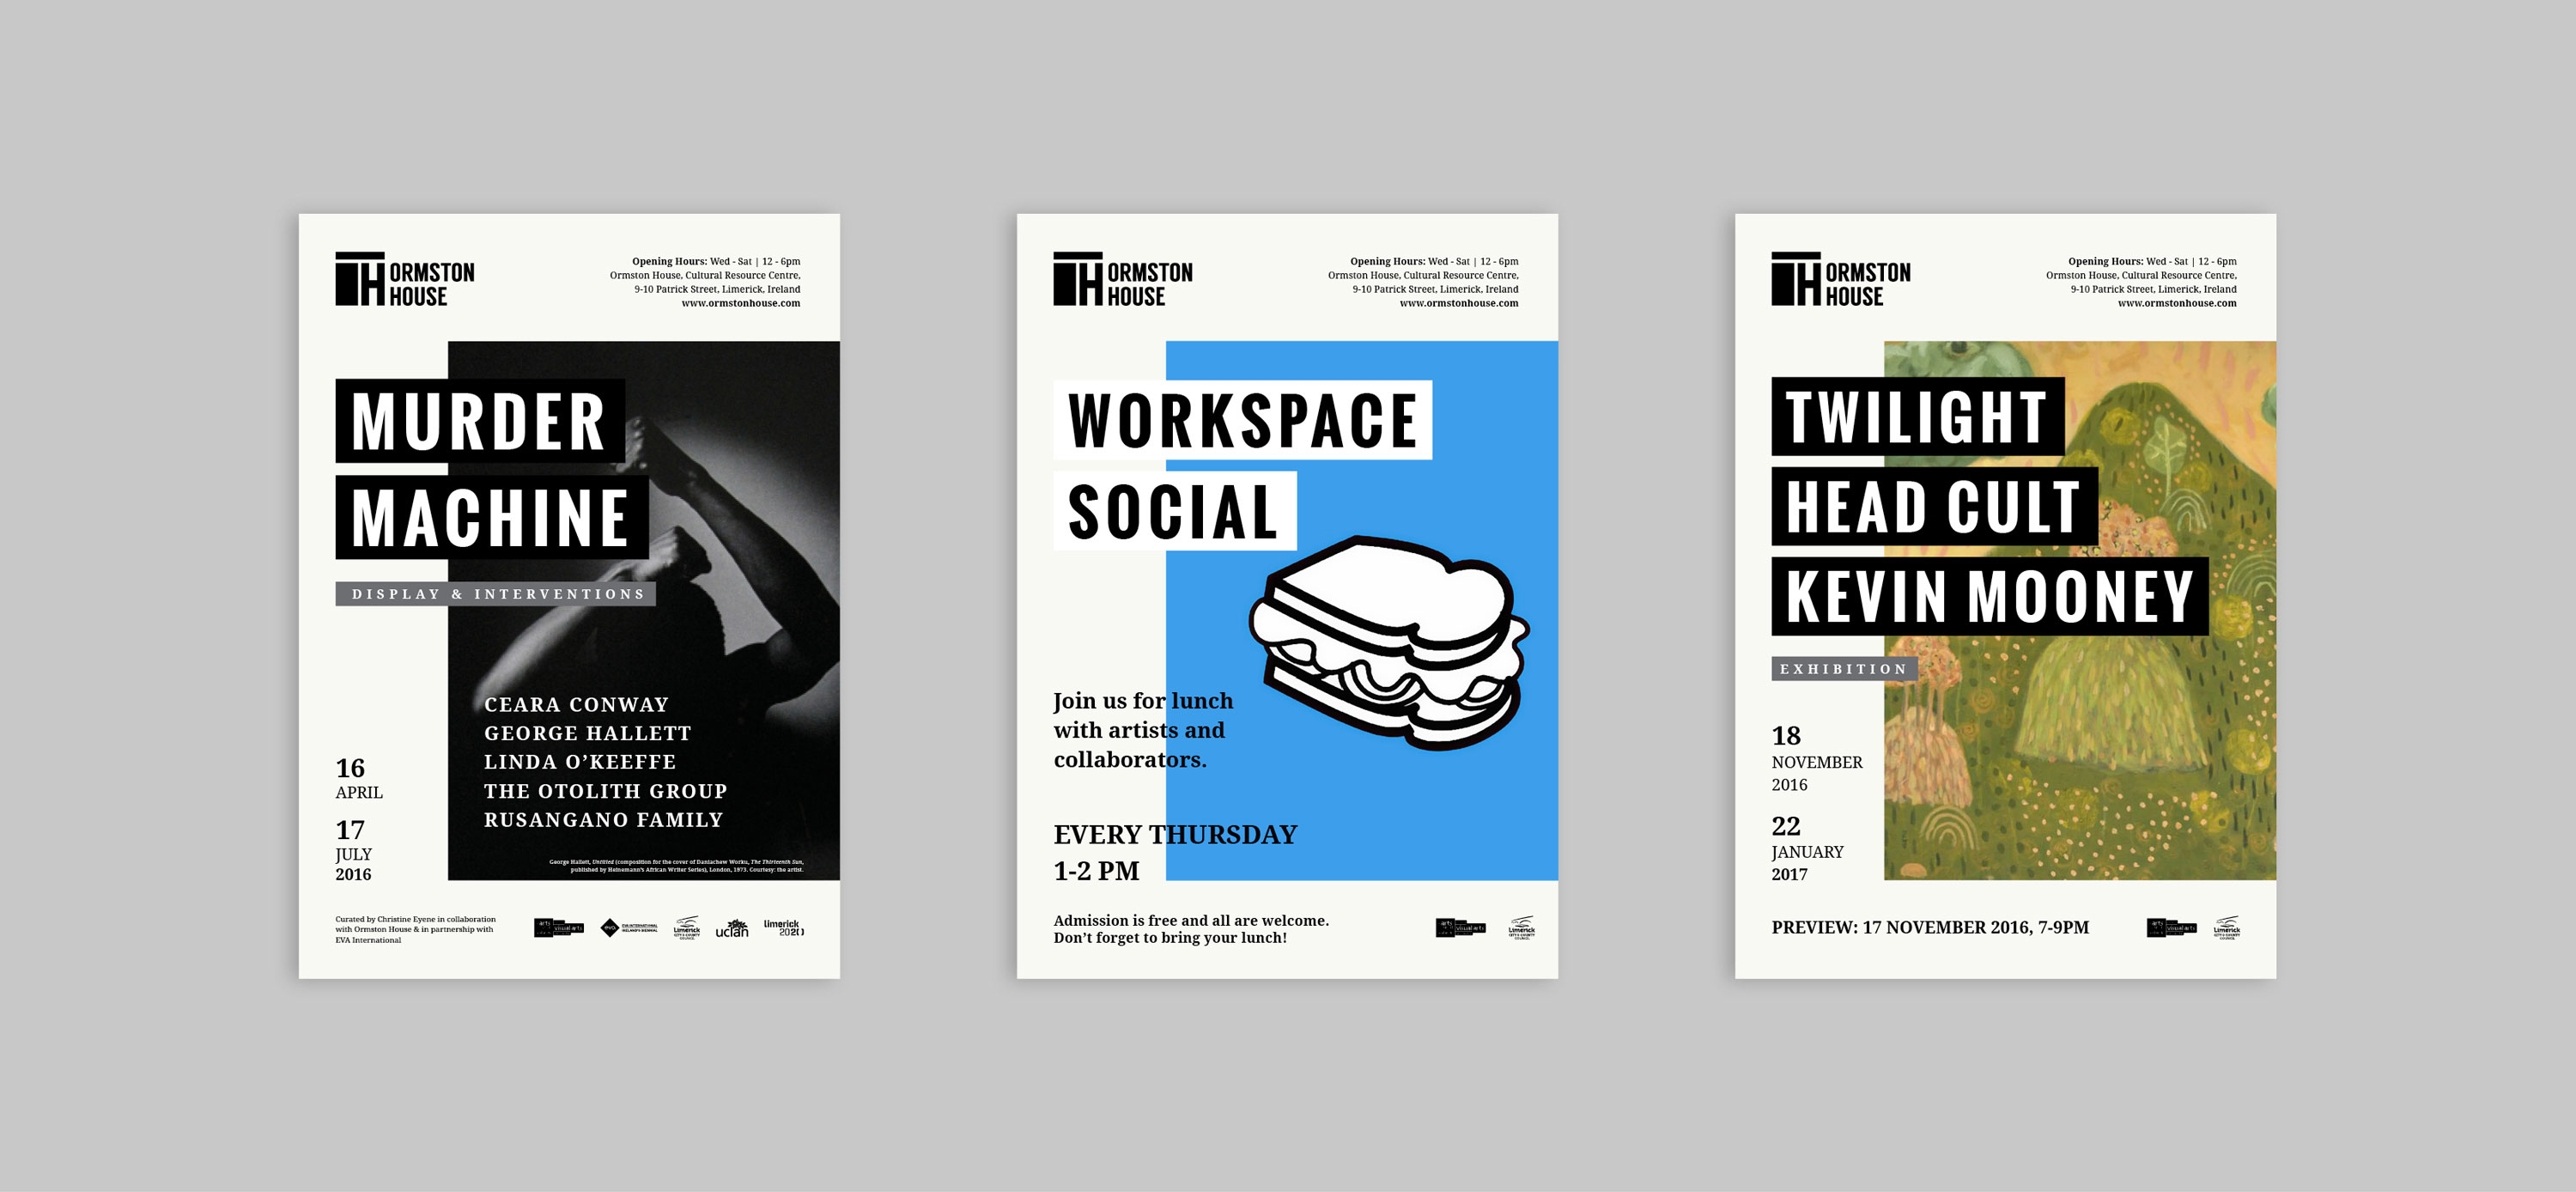 Posters for Ormston House events featuring brand development and typography